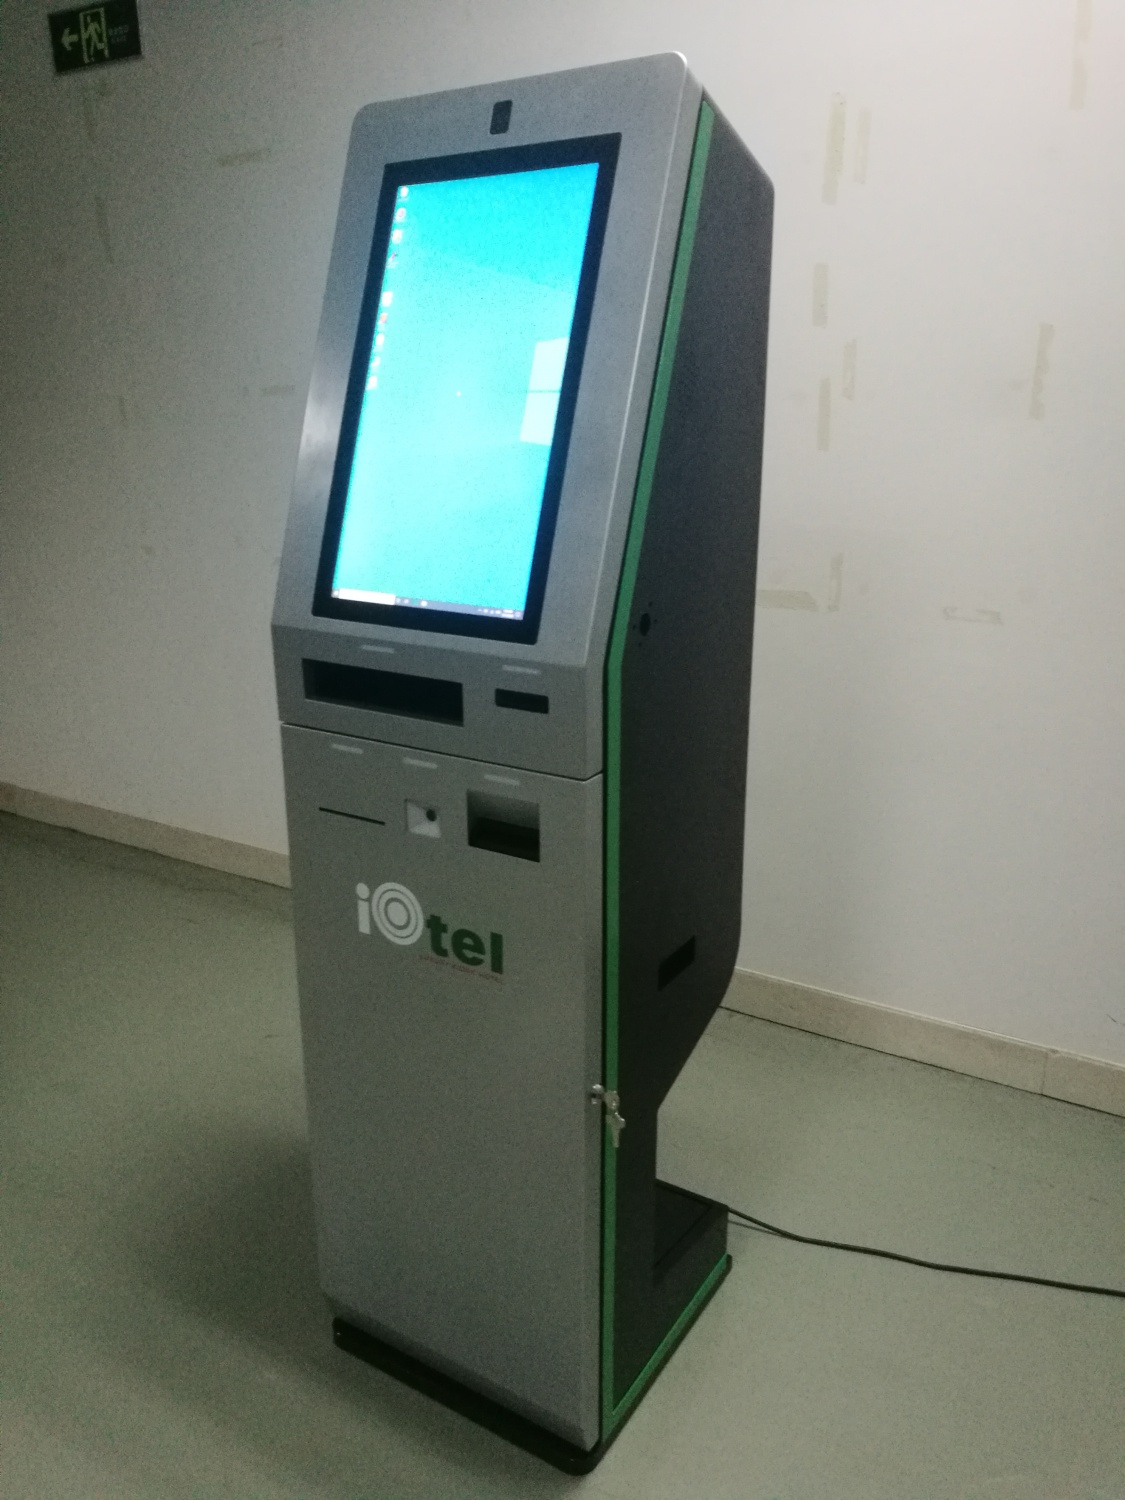 Hotel Check-in and Check-out kiosk